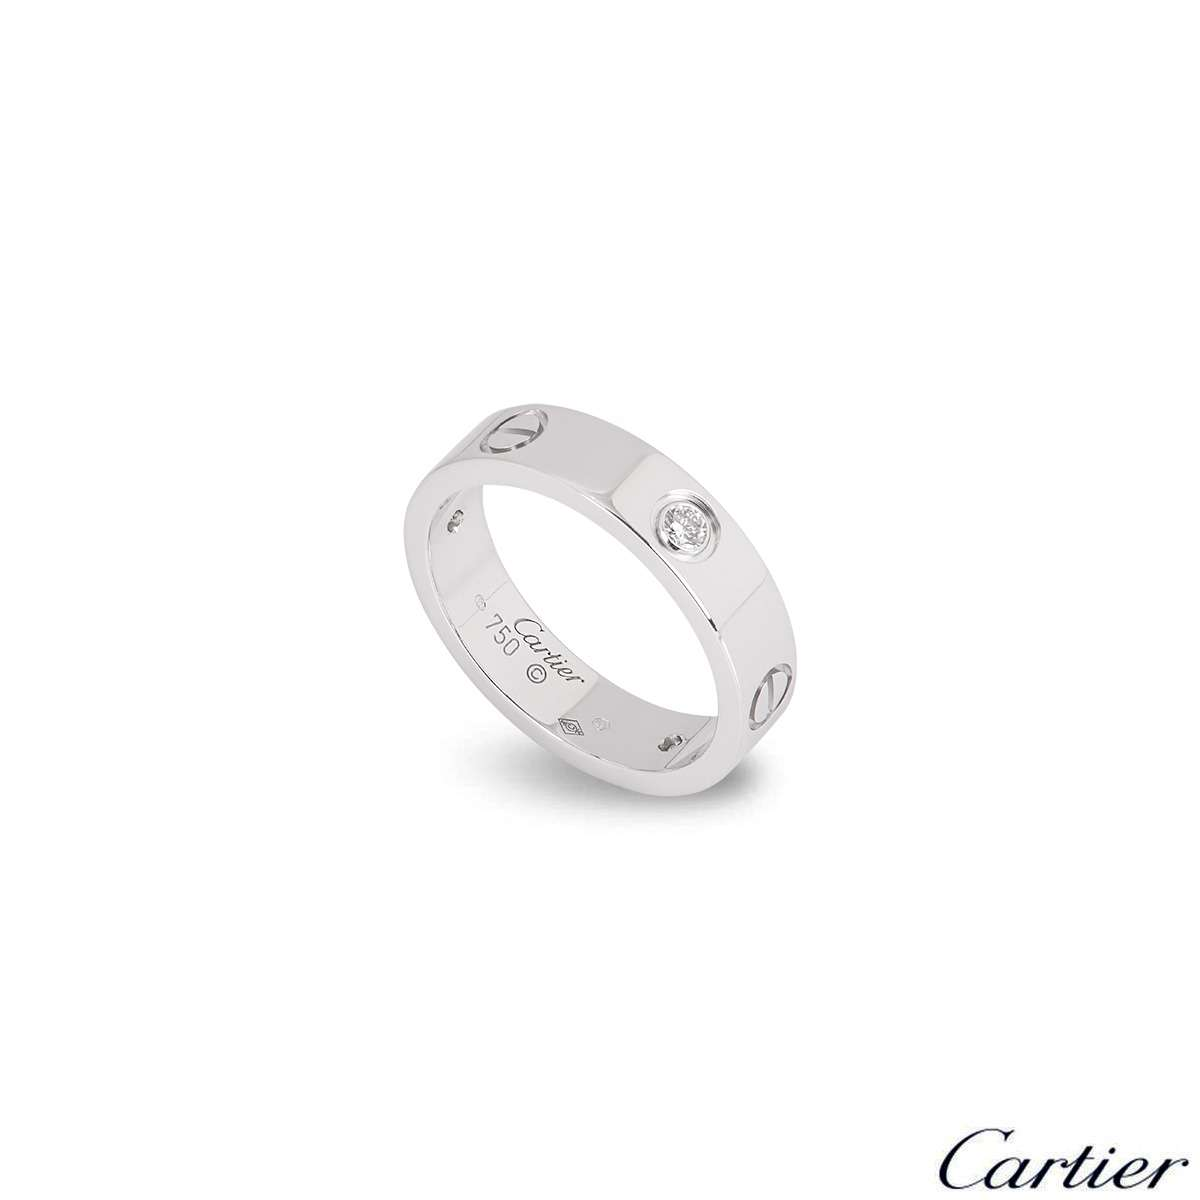 Cartier White Gold Half Diamond Love Ring Size 54 B4032500